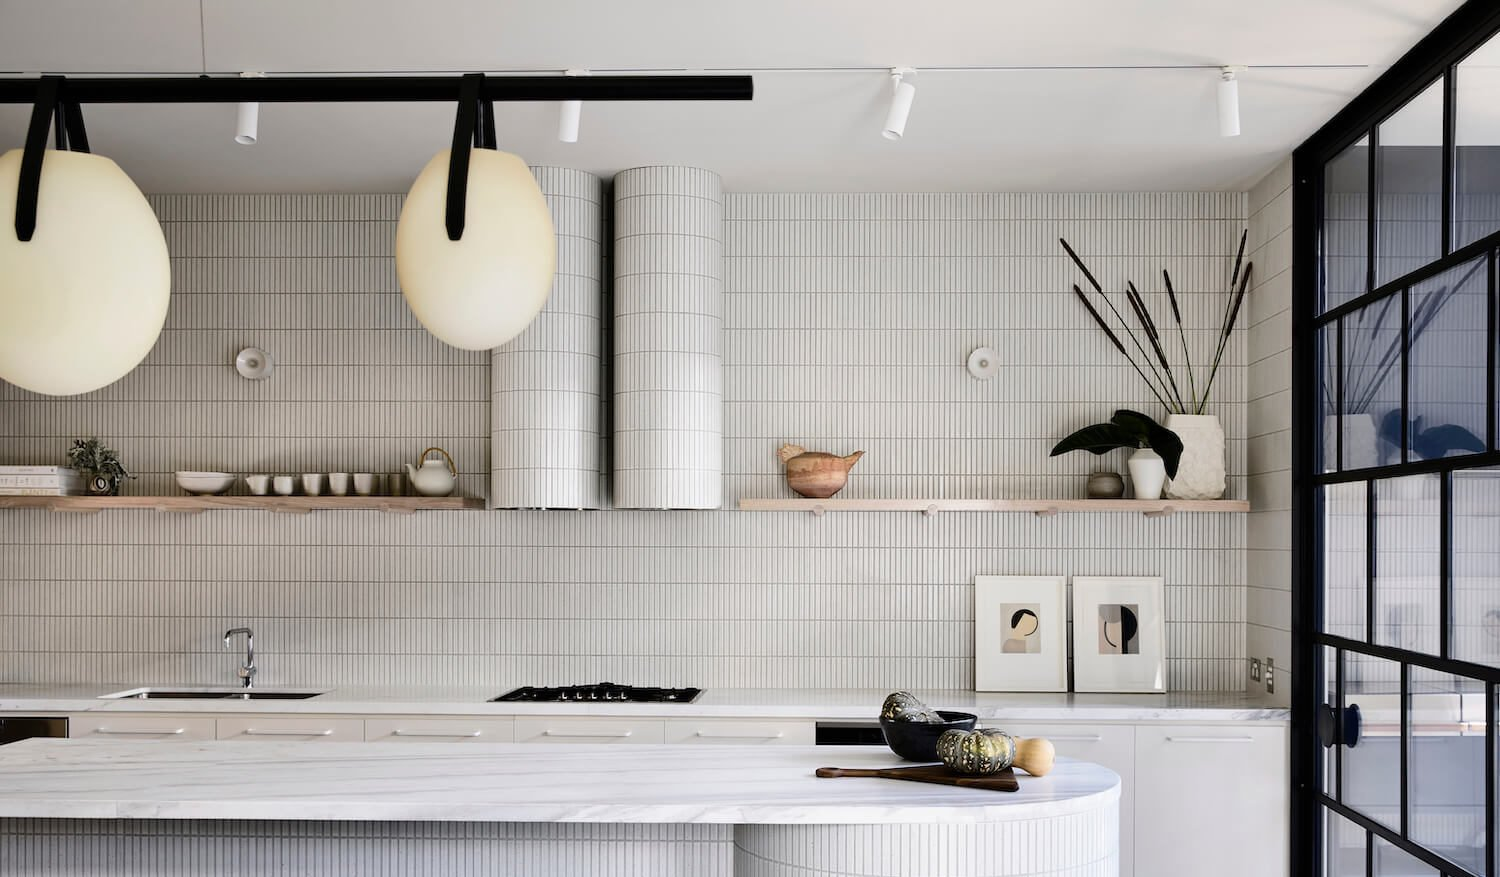 White Kitchens: Timeless and Classic